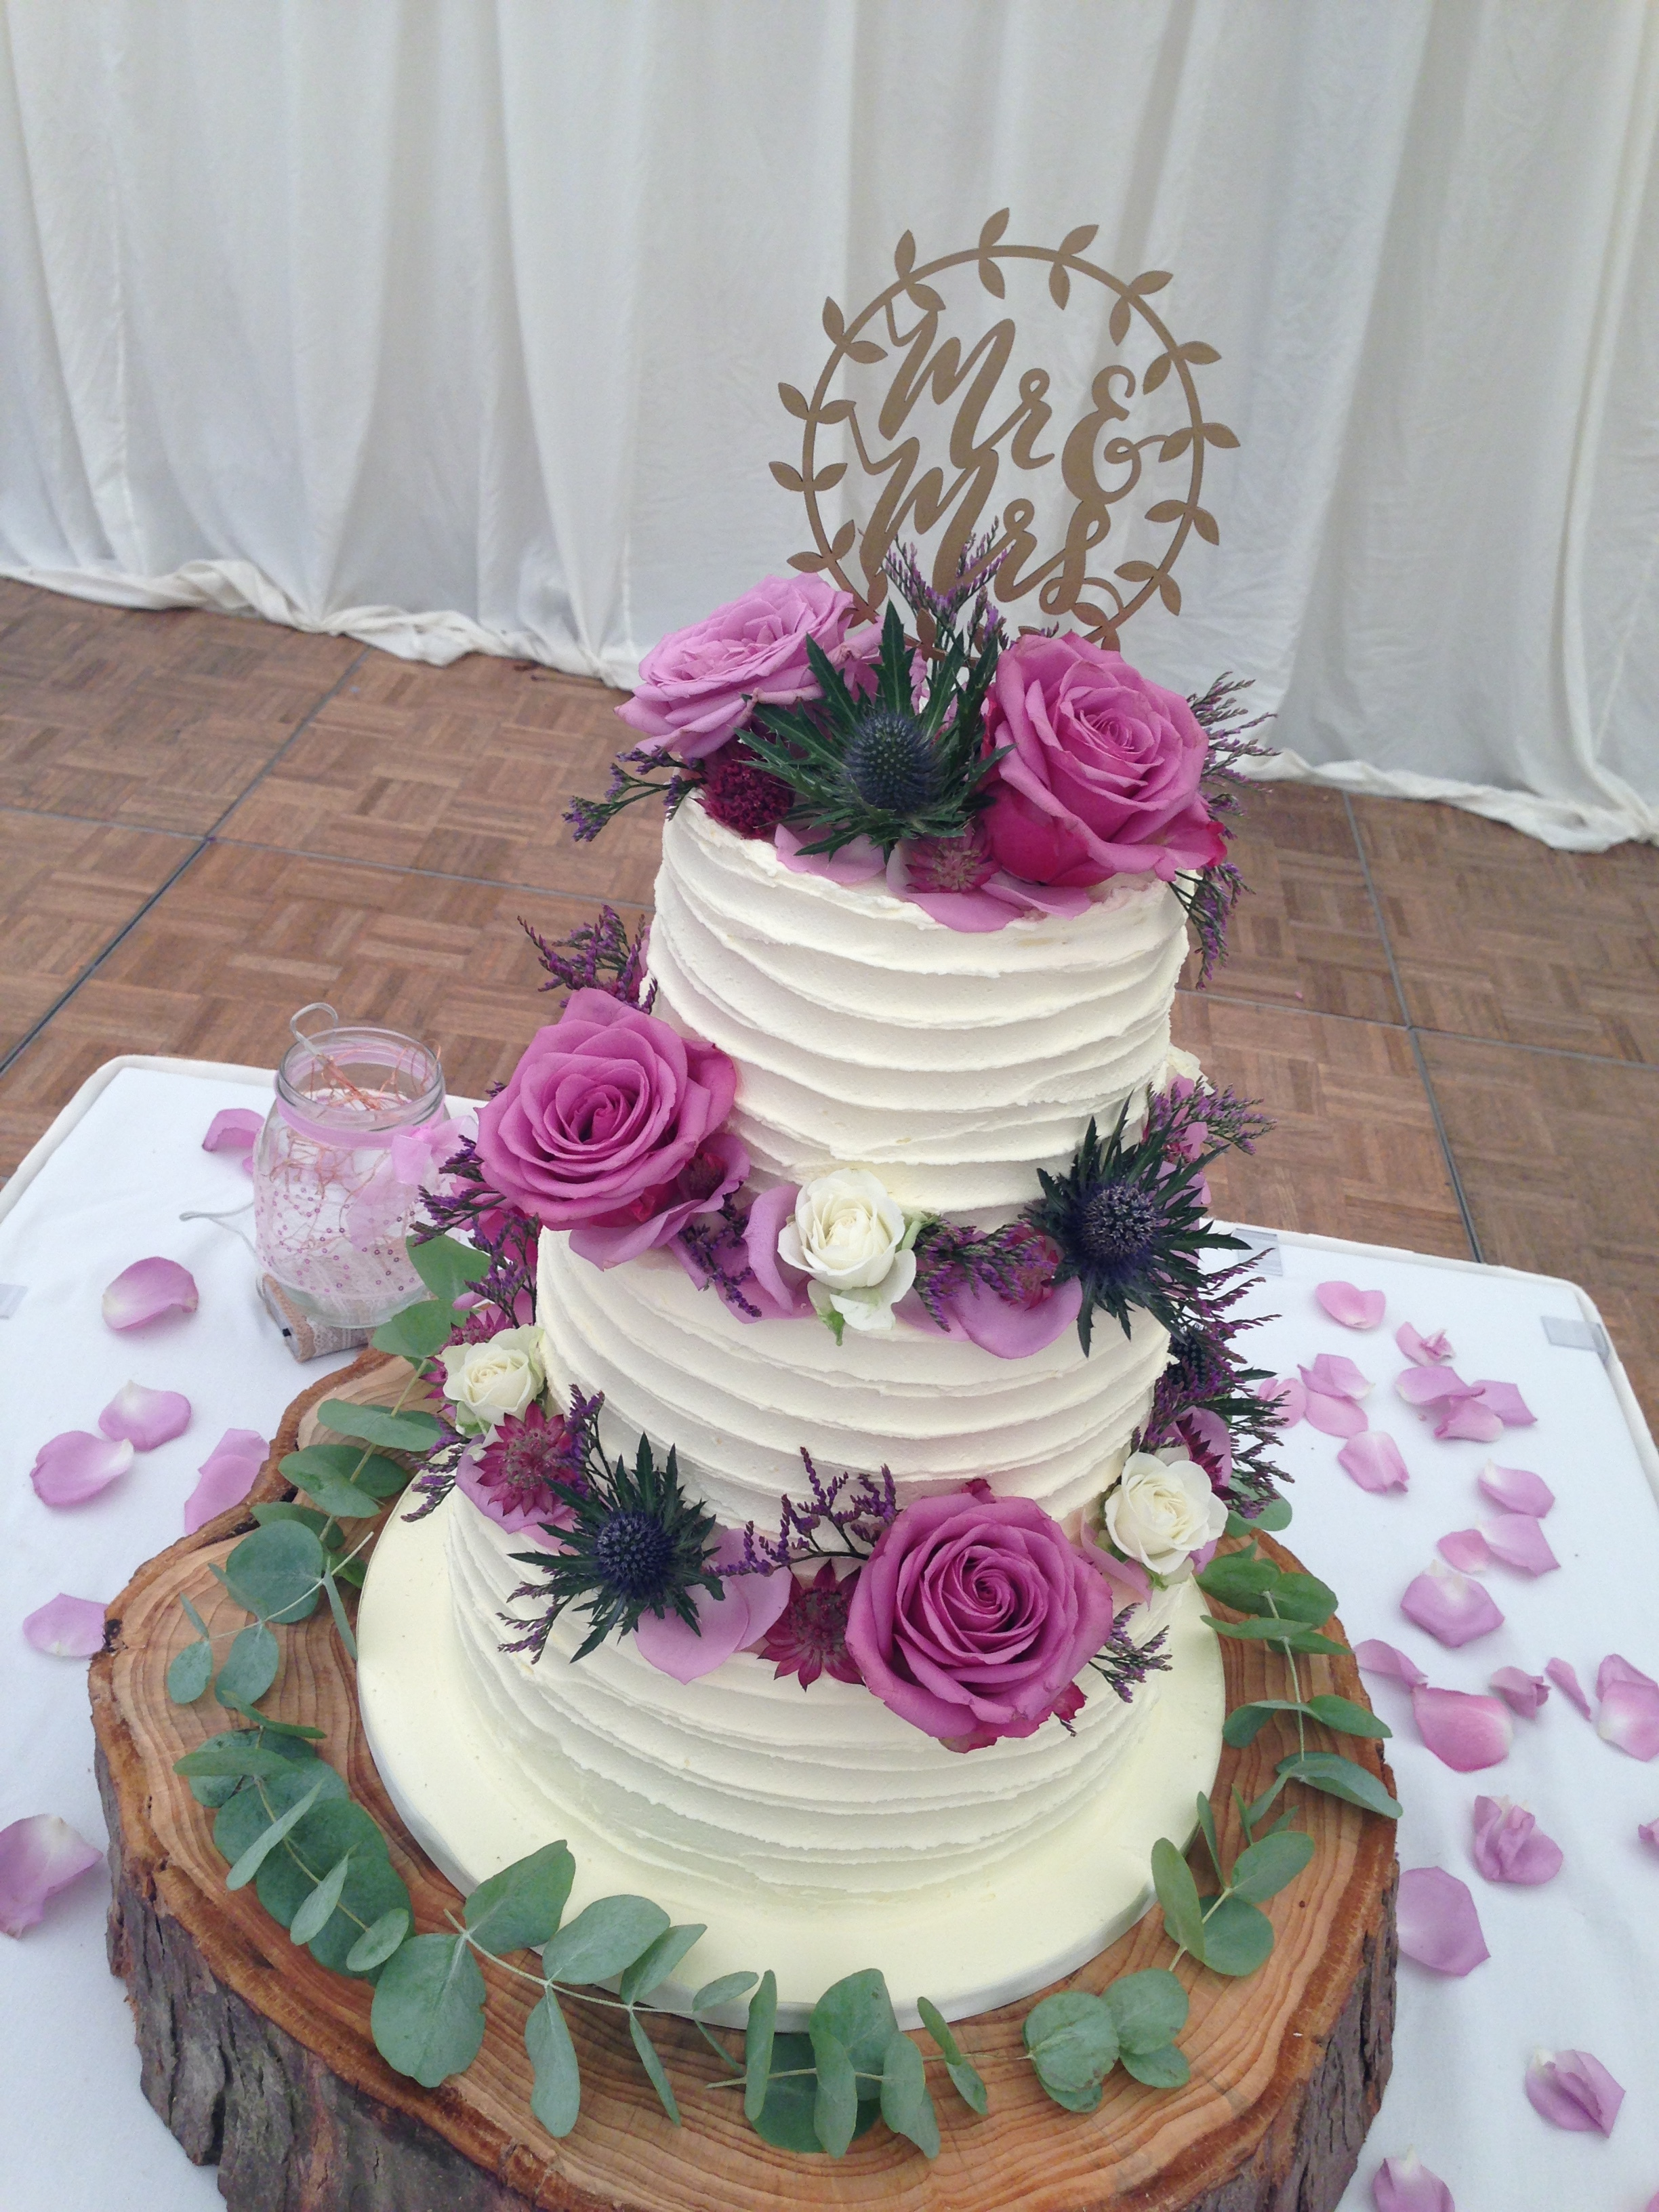 Buttercream wedding cake. Loren Brand Cakes.